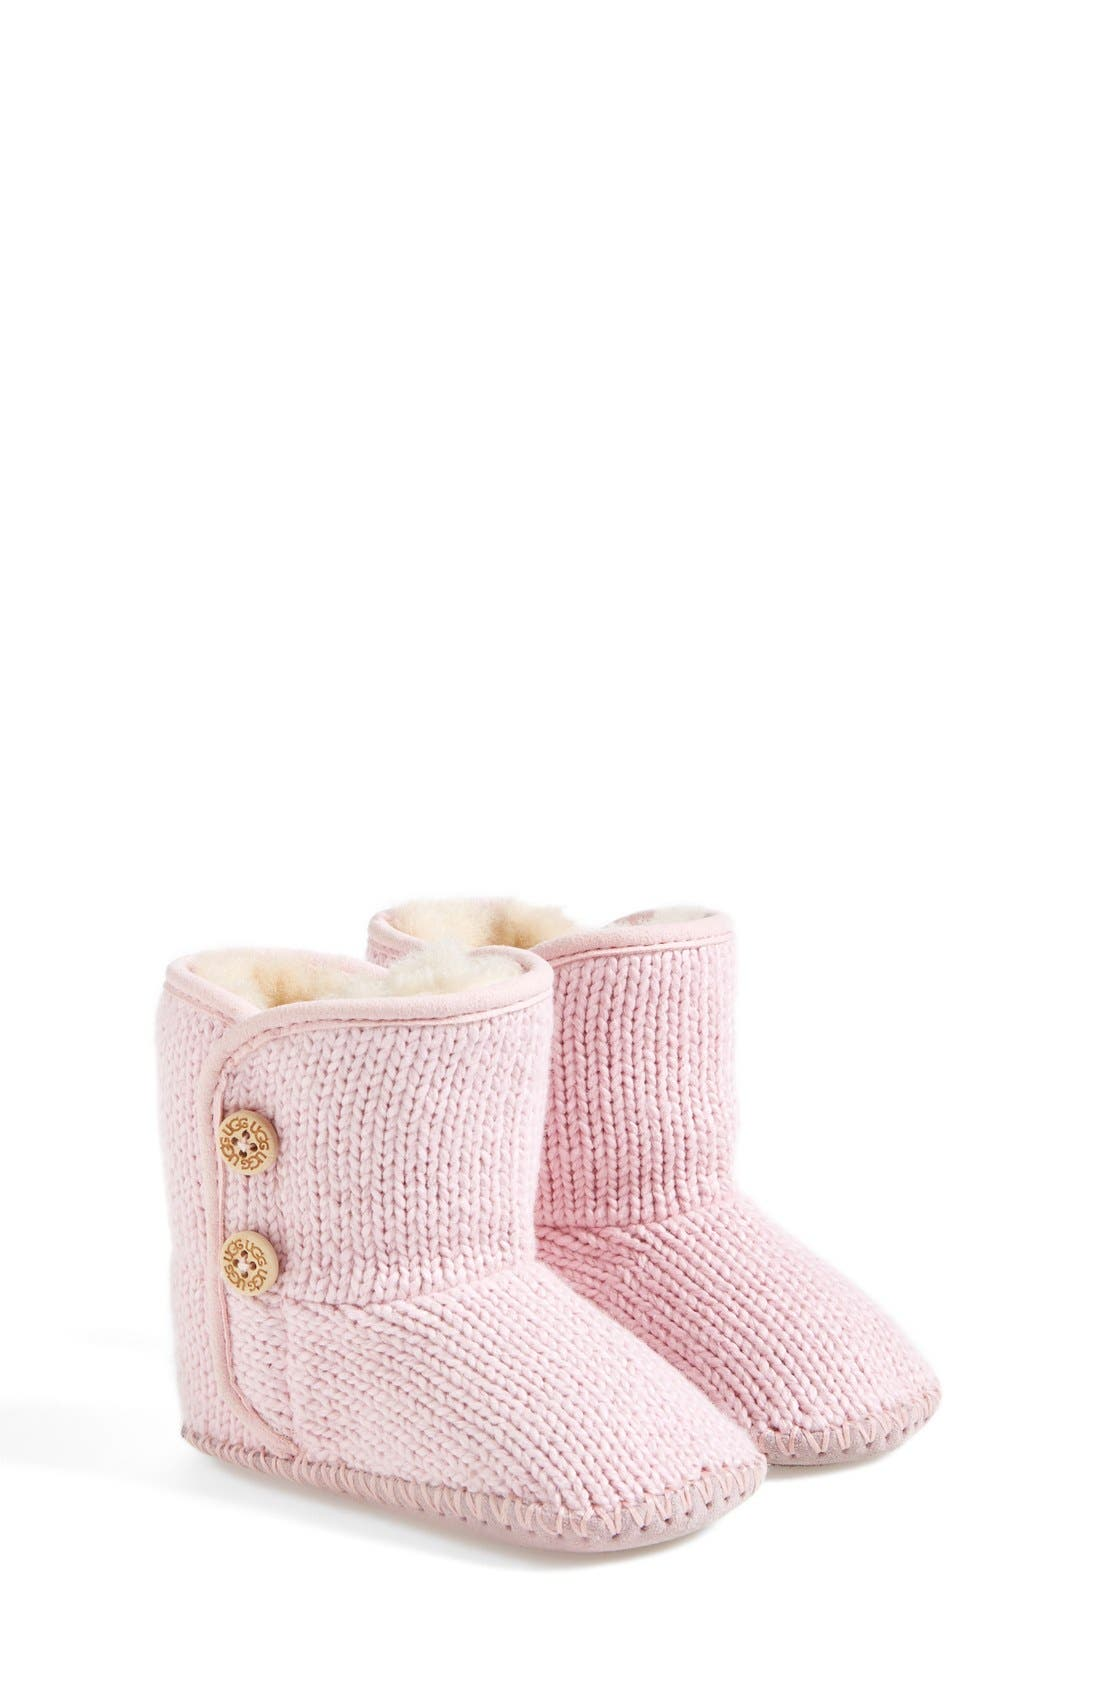 Main Image - UGG® Purl Knit Bootie (Baby & Walker)